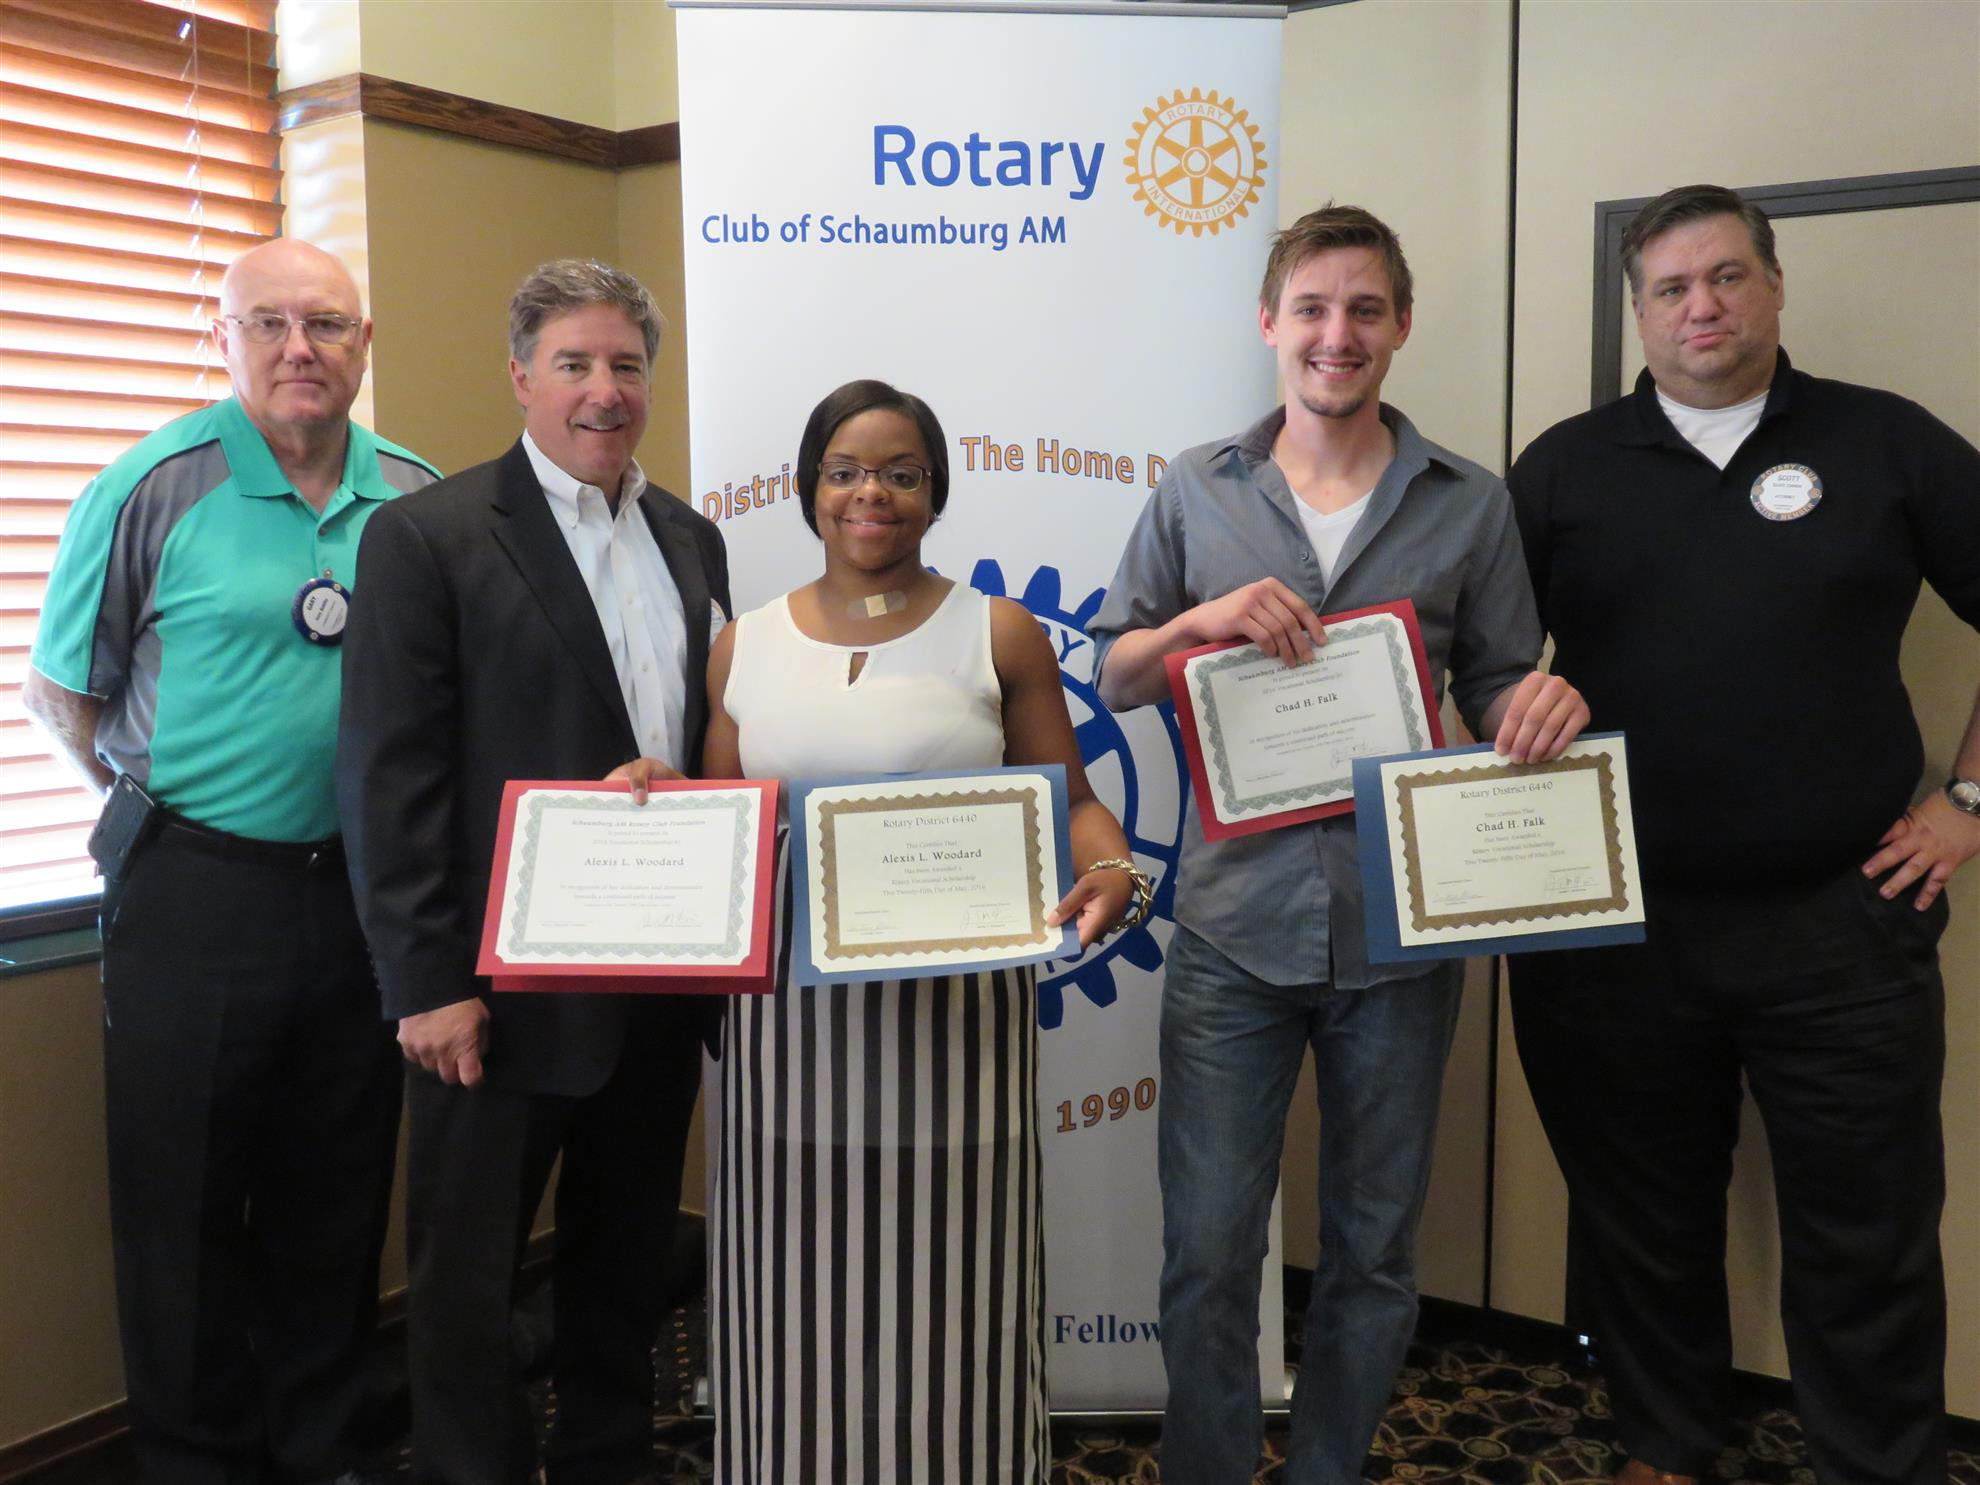 stories rotary club of schaumburg a m are preparing for post secondary vocational or technical careers that require less than a four year degree associate degree or equivalent certification